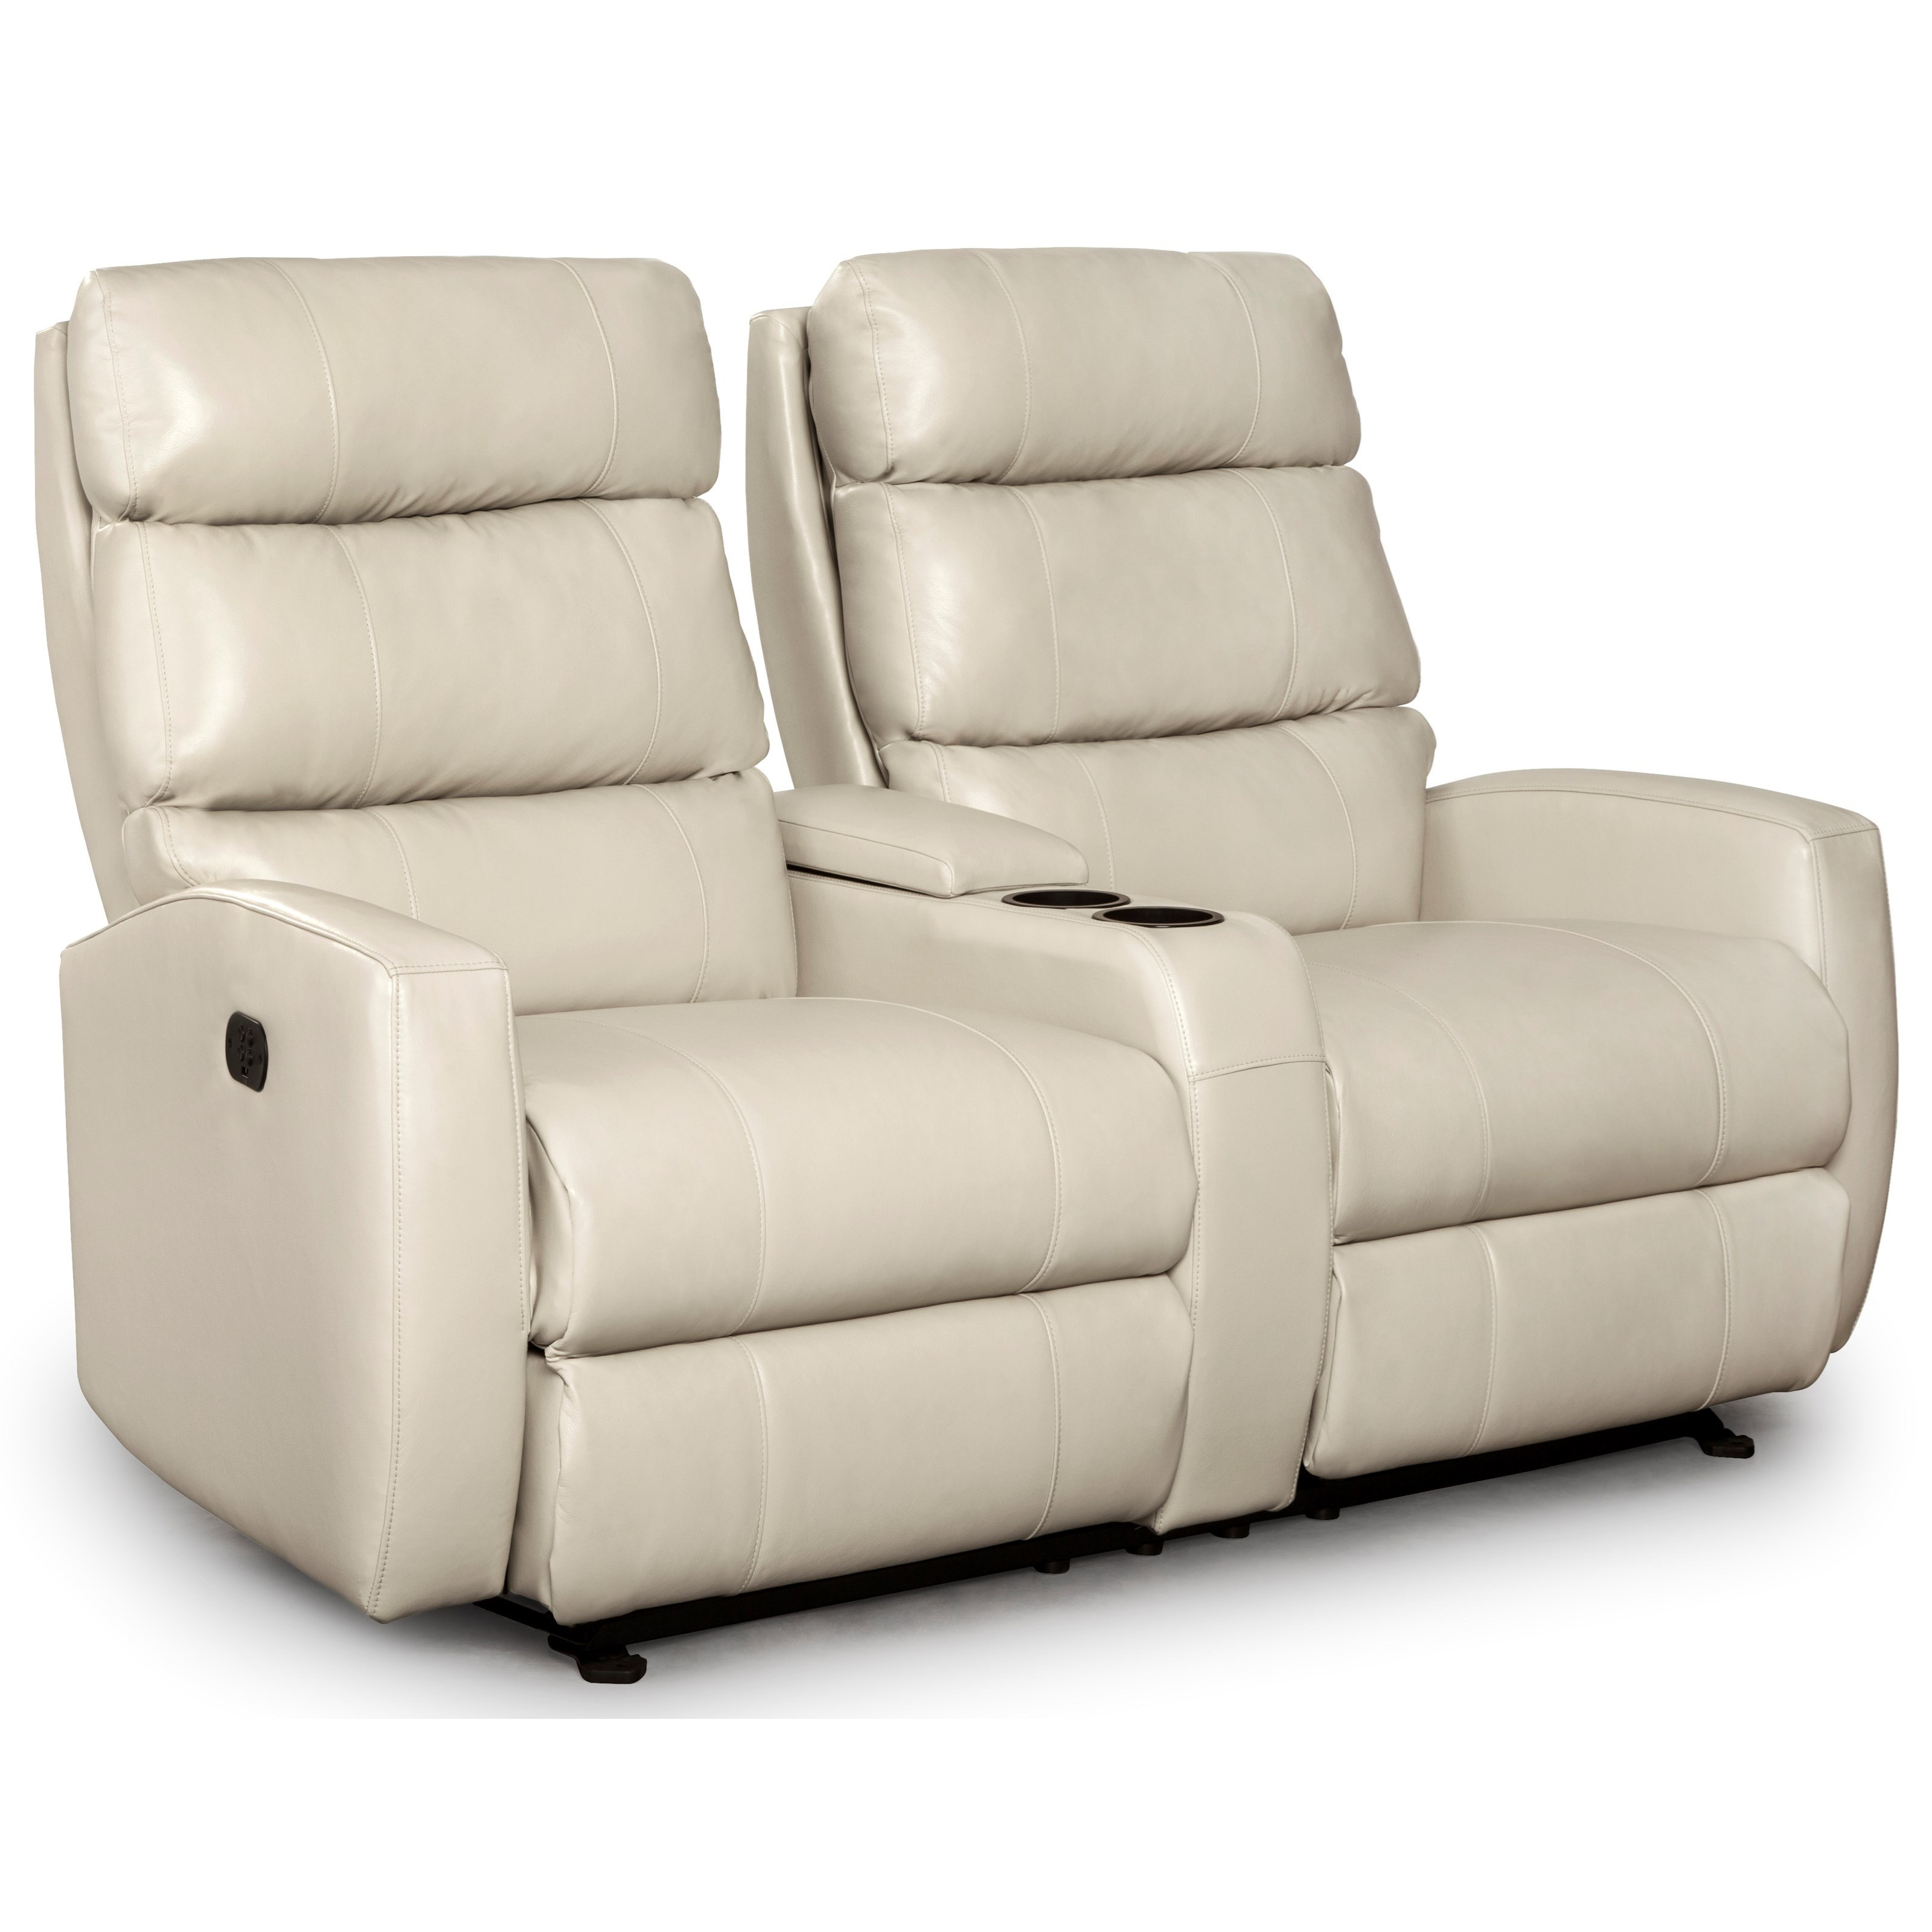 Groovy Power Rocking Reclining Console Loveseat With Power Tilt Onthecornerstone Fun Painted Chair Ideas Images Onthecornerstoneorg